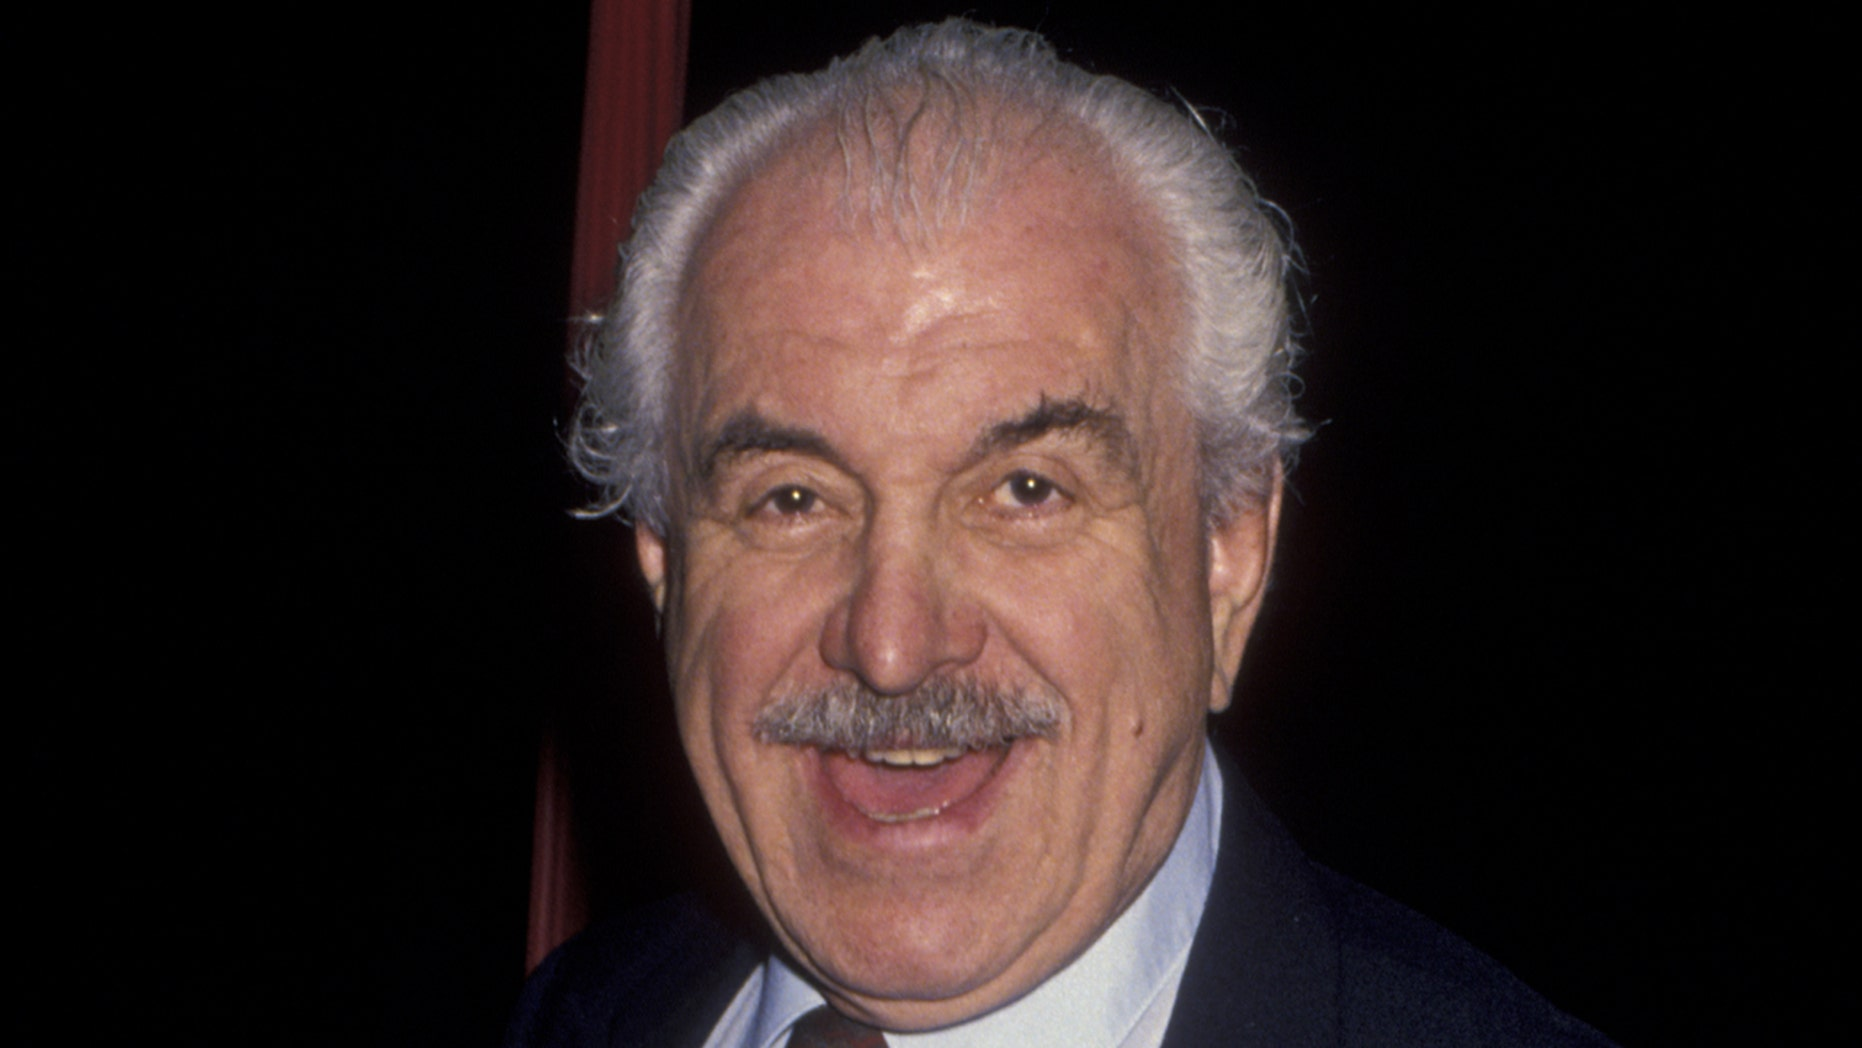 'Mad About You' star and theater veteran, Louis Zorich, died on Feb. 2018 at the age of 93.